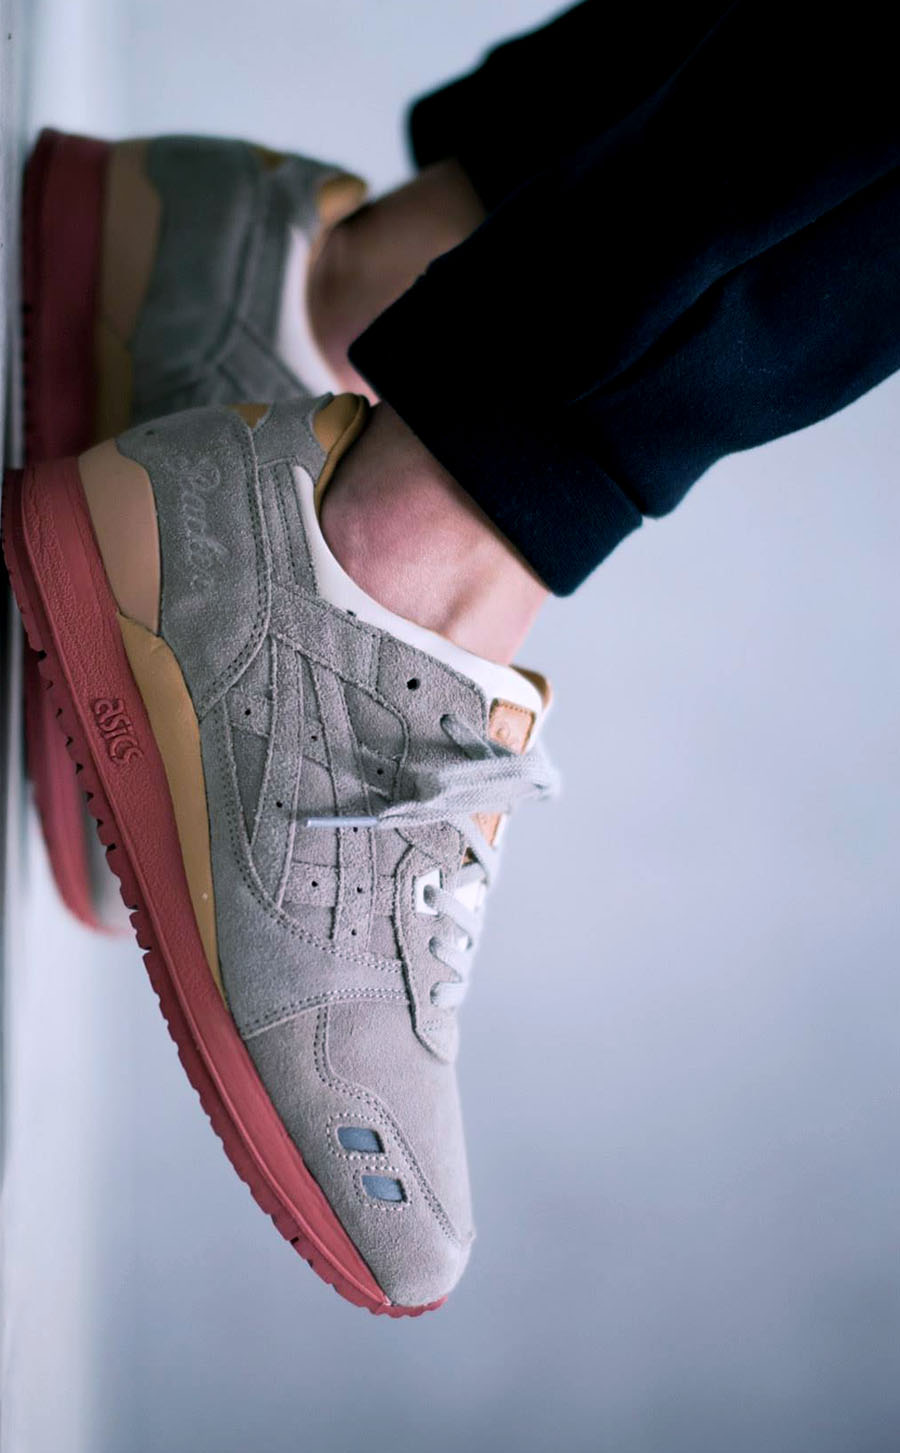 PACKER SHOES × ASICS Gel Lyte III Dirty Buck